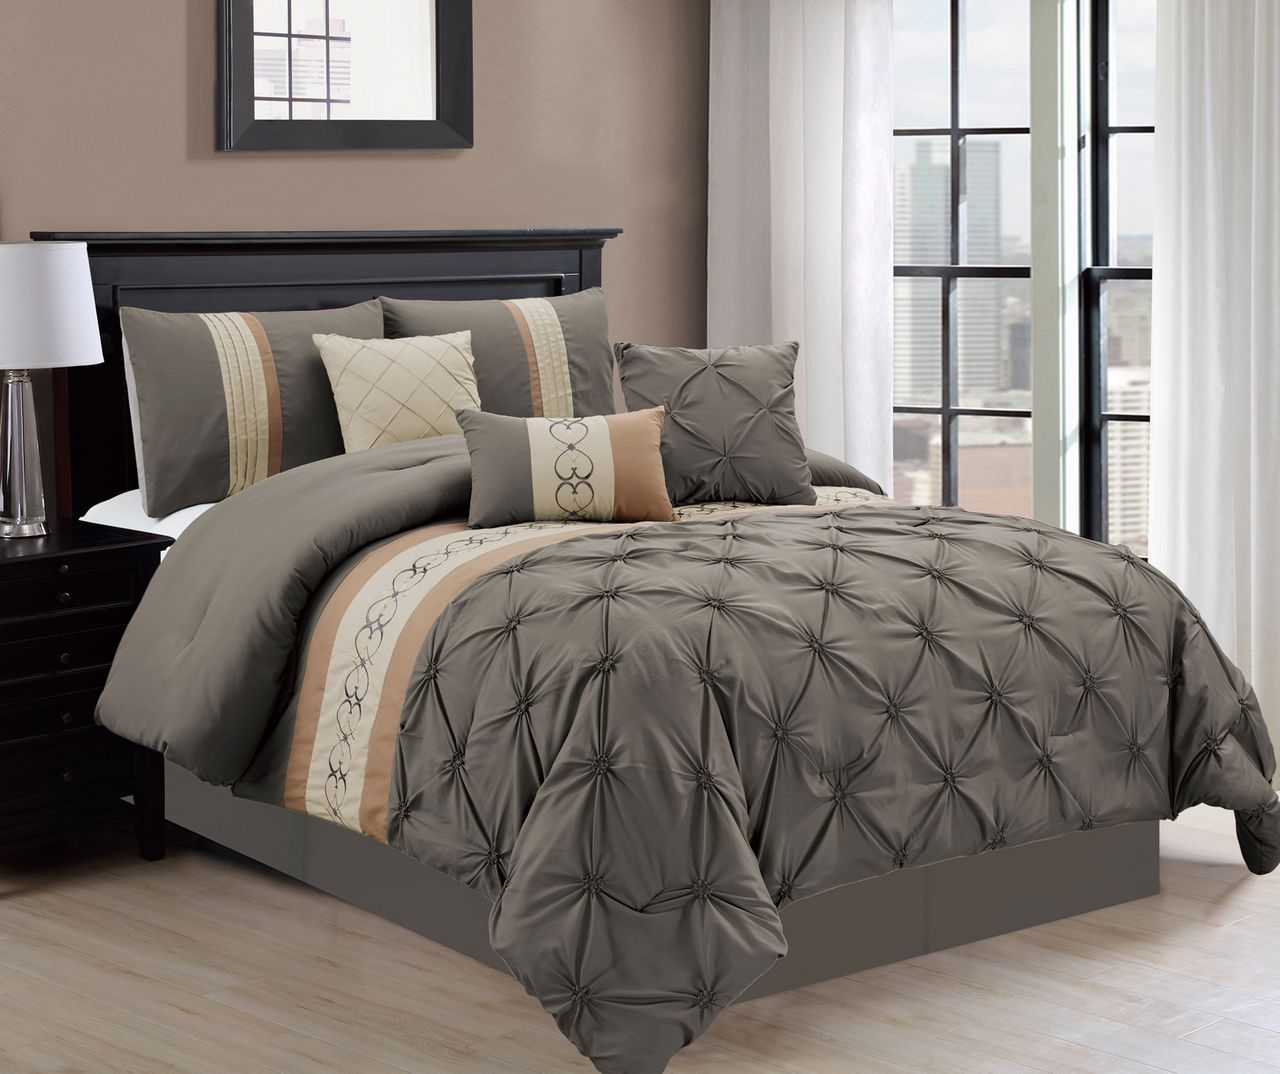 pinched today kotter comforter microfiber overstock set pleat polyester pinch free product bath home bedding and shipping